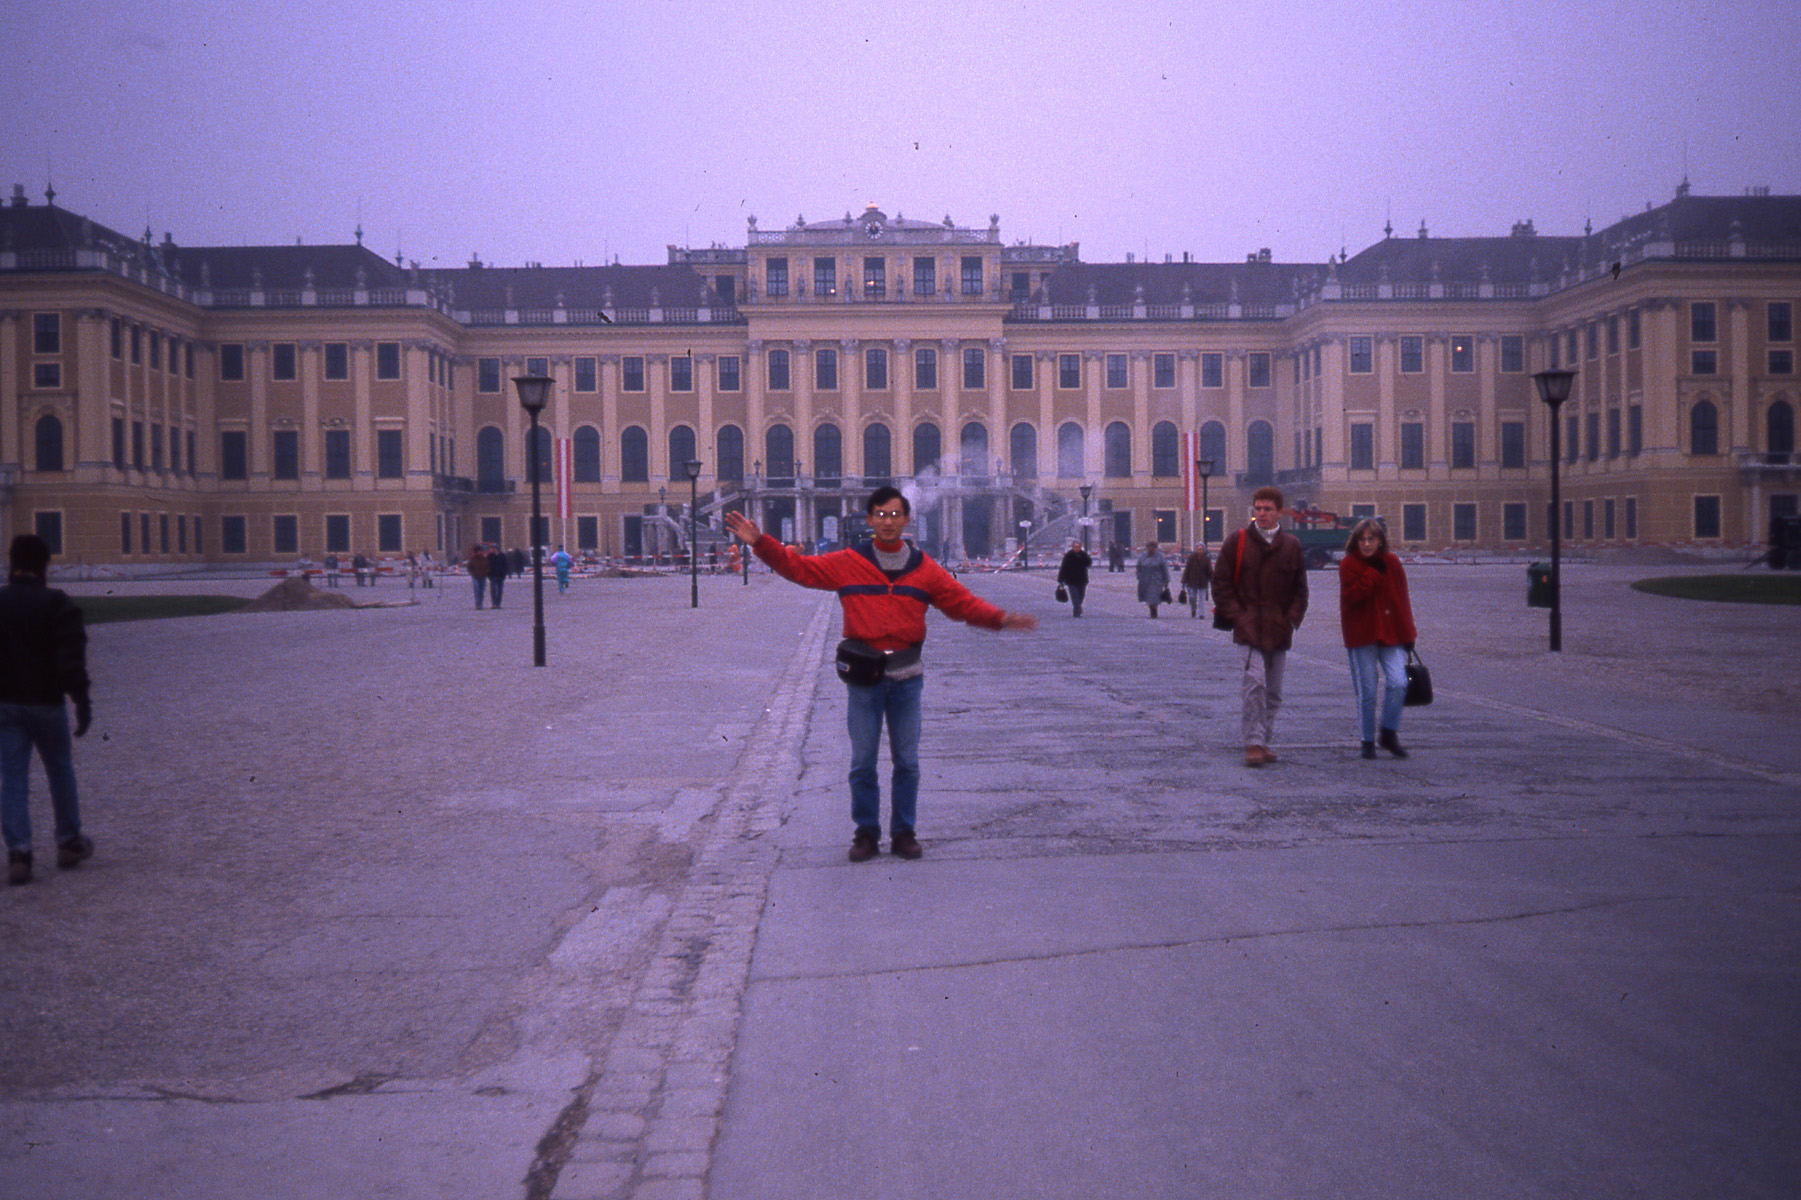 Building my Influence at Versailles 1989Photography by Challen Yee